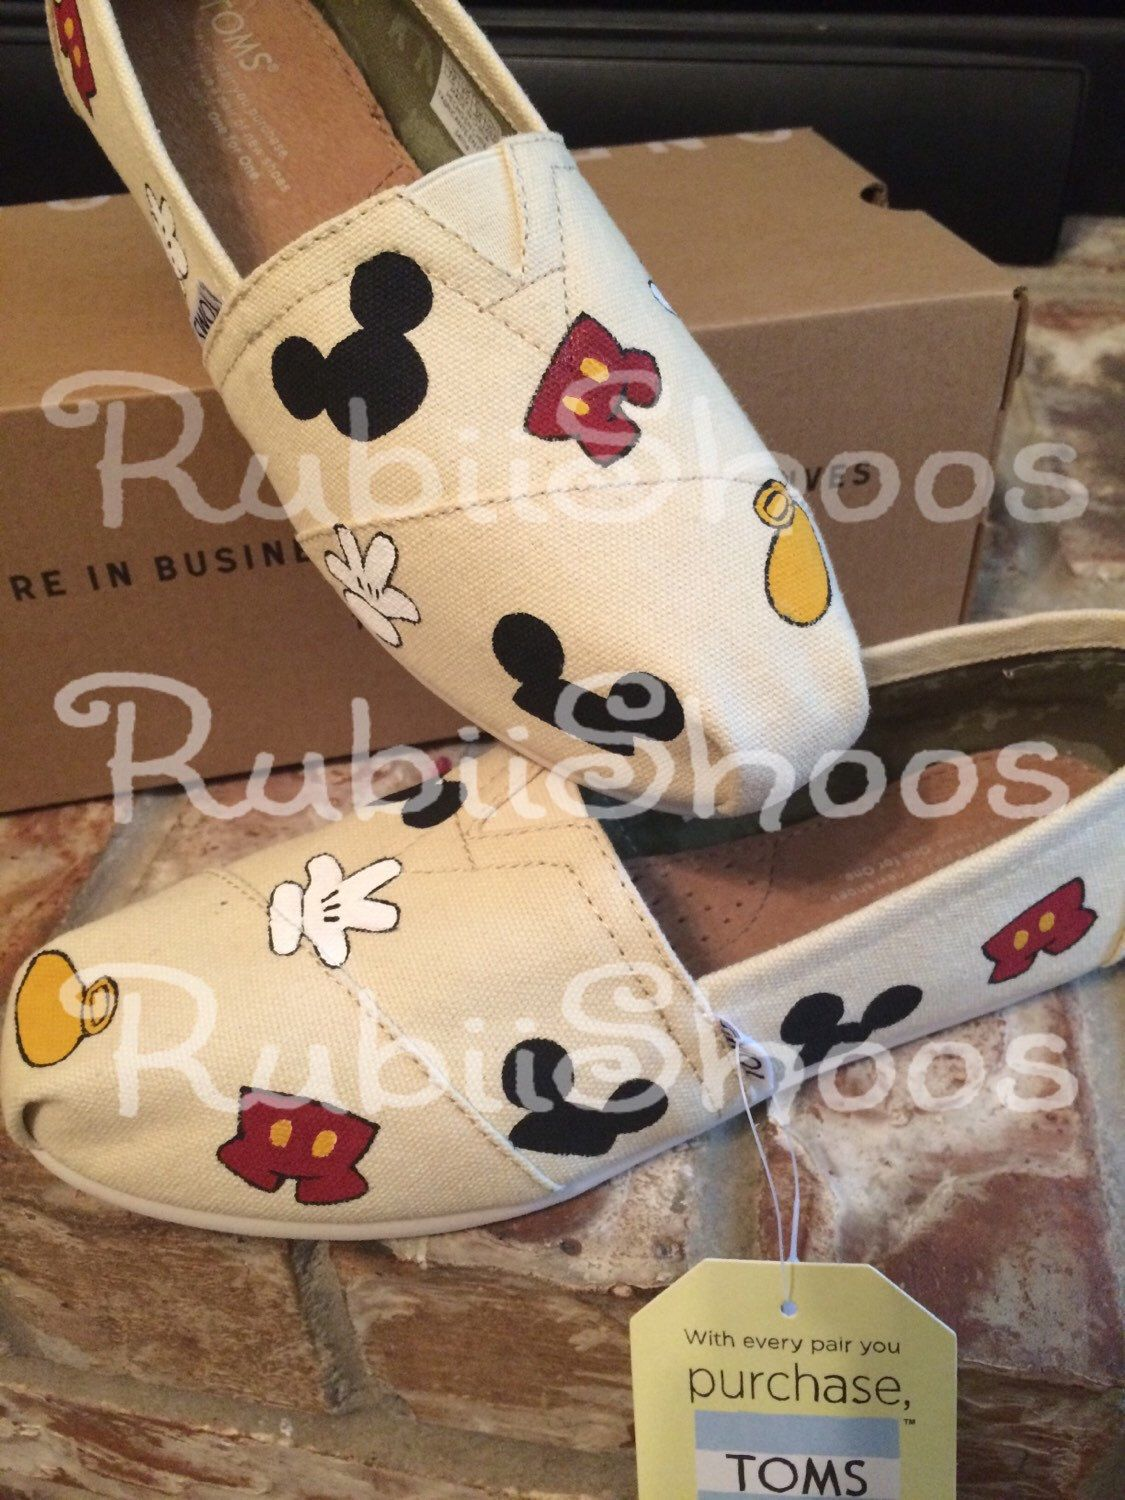 Mouse Head, Gloves, Ears, Shoe, and  Pants on Toms by RubiiShoos on Etsy https://www.etsy.com/listing/205424028/mouse-head-gloves-ears-shoe-and-pants-on